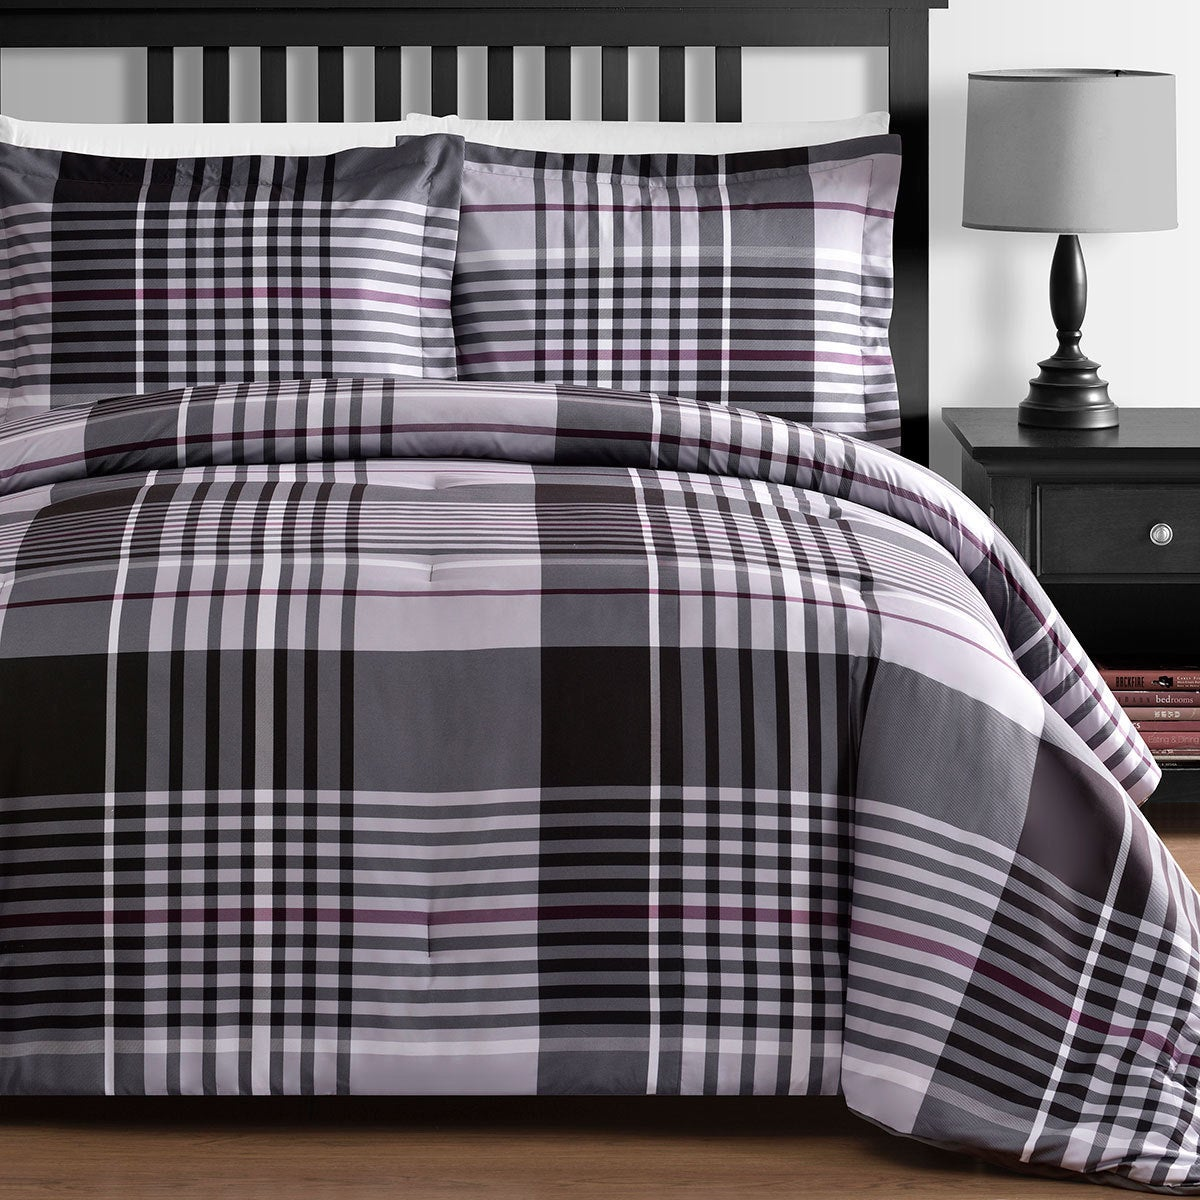 Comfy Bedding Grey Plaid Down Alternative 3 Piece Comforter Set Red Full Home Comforters